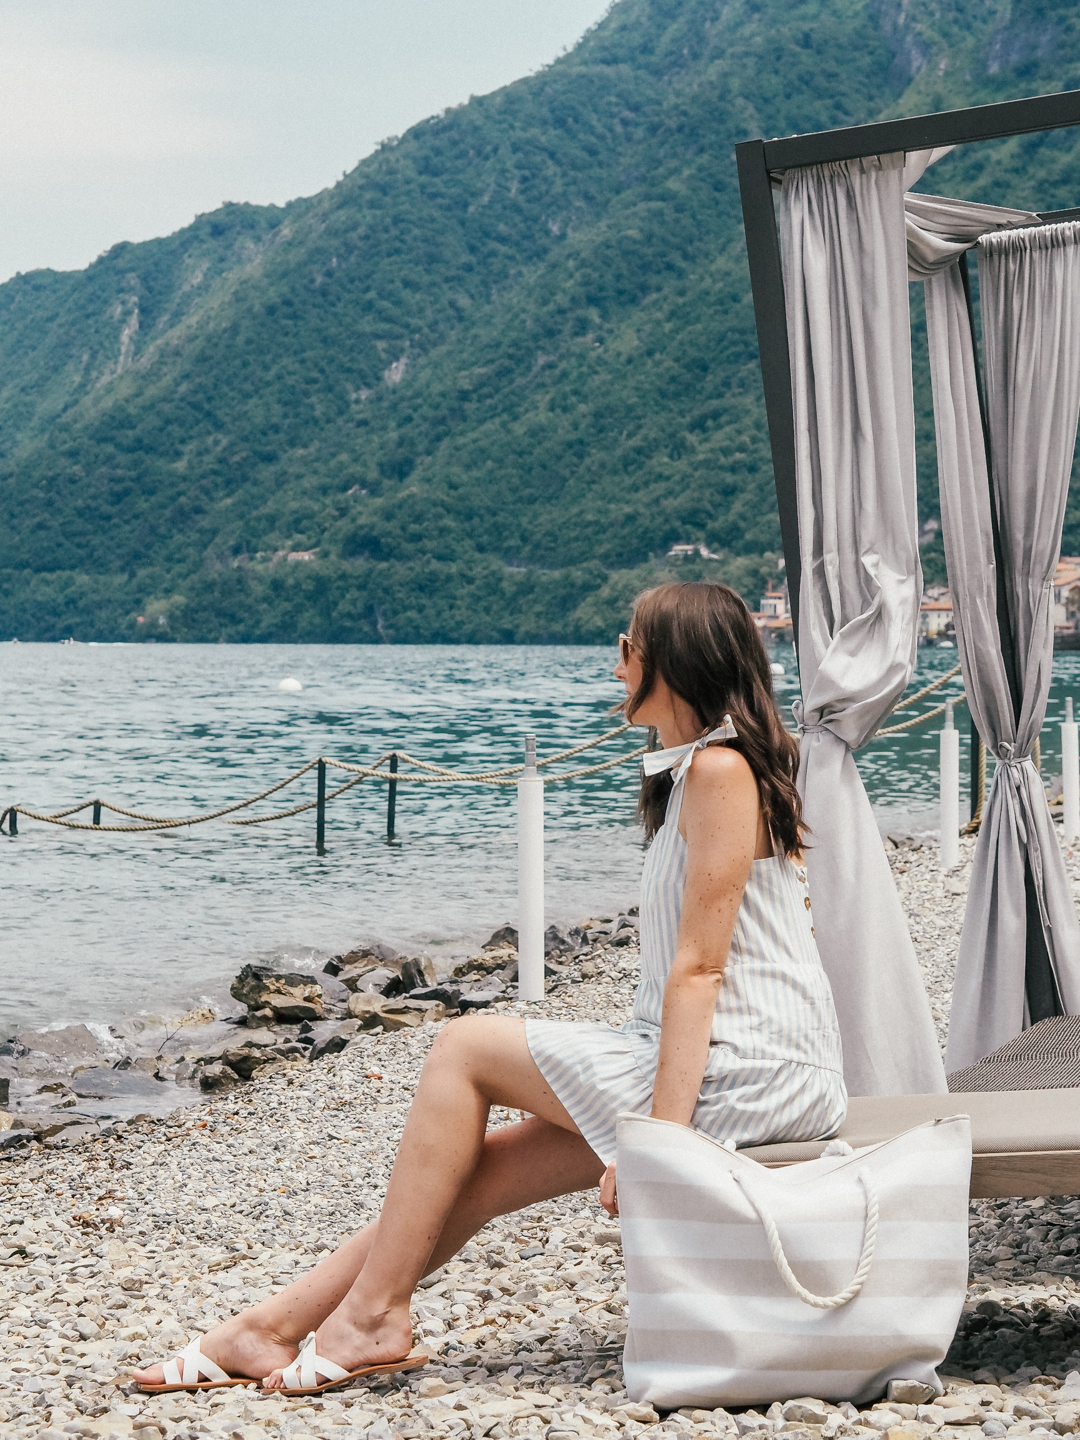 Hotel with a pool and beach in Lake Como